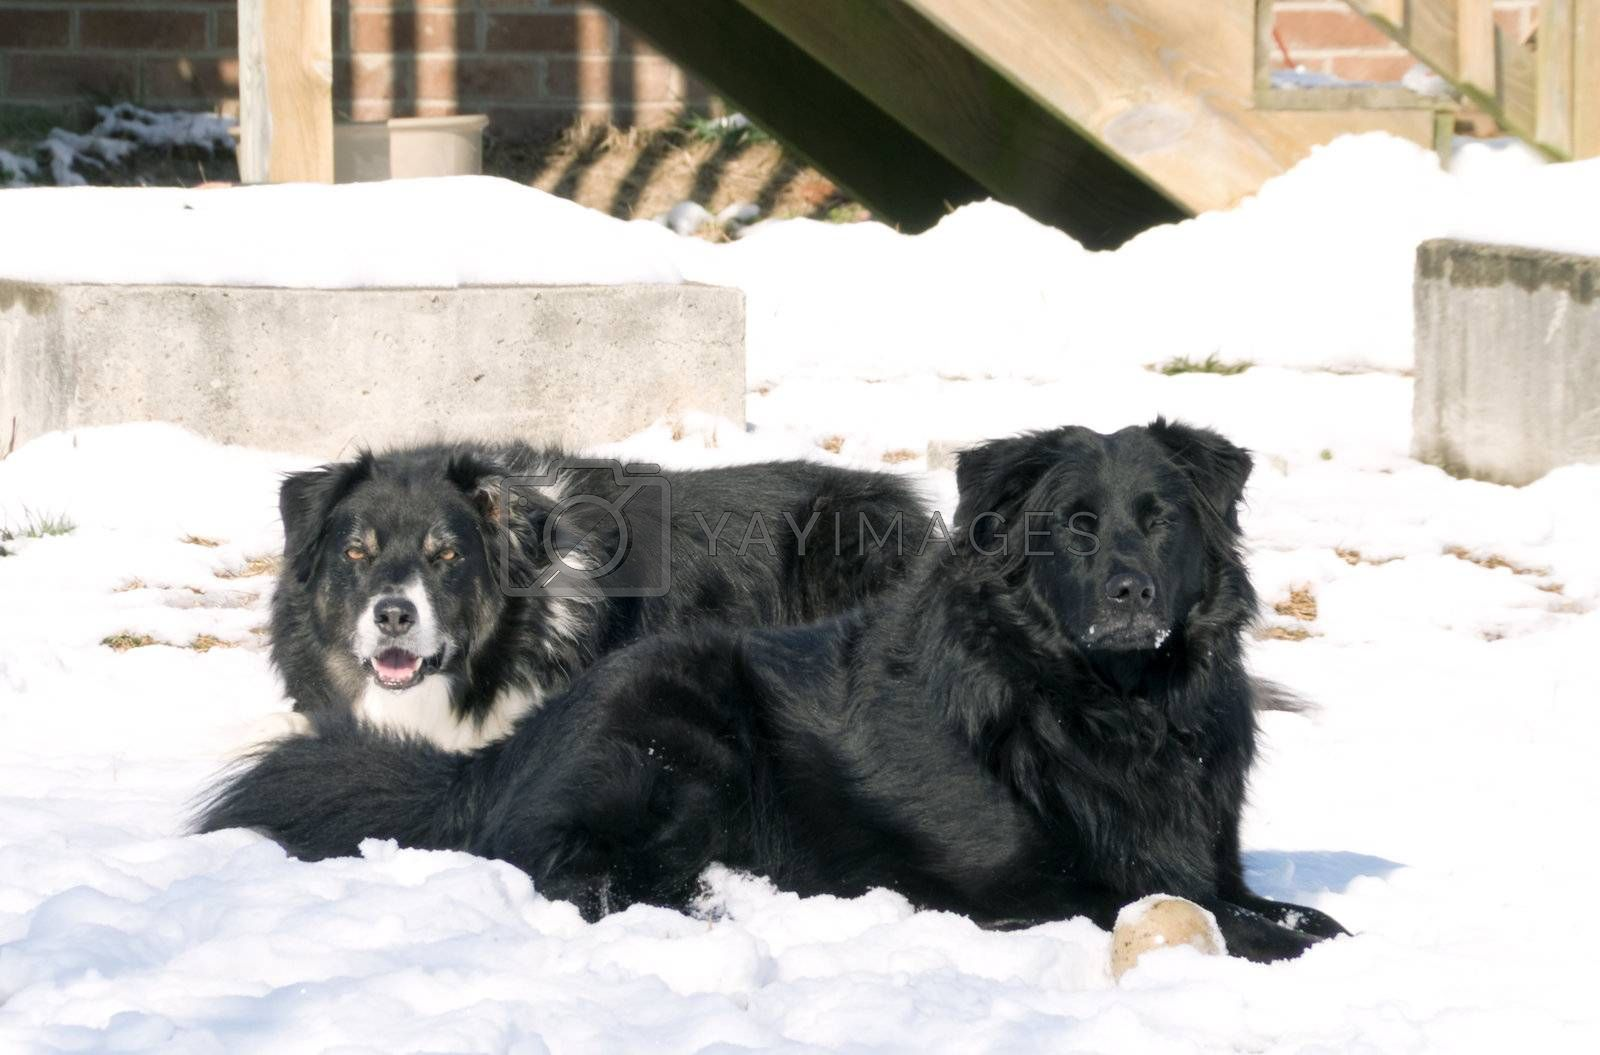 A border collie relaxing in the snow.